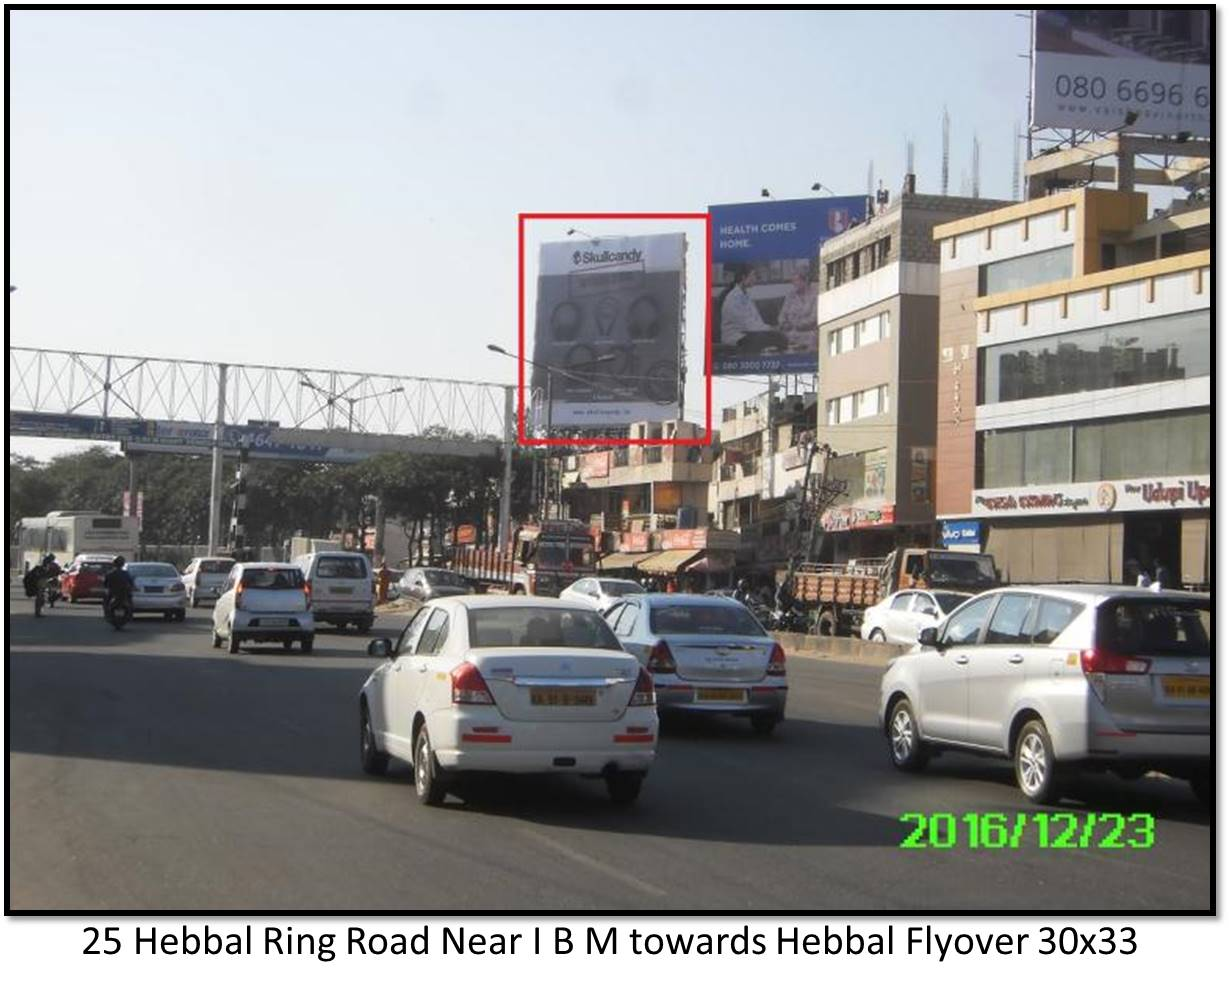 Hebbal Ring Road Near I B M, Bengaluru